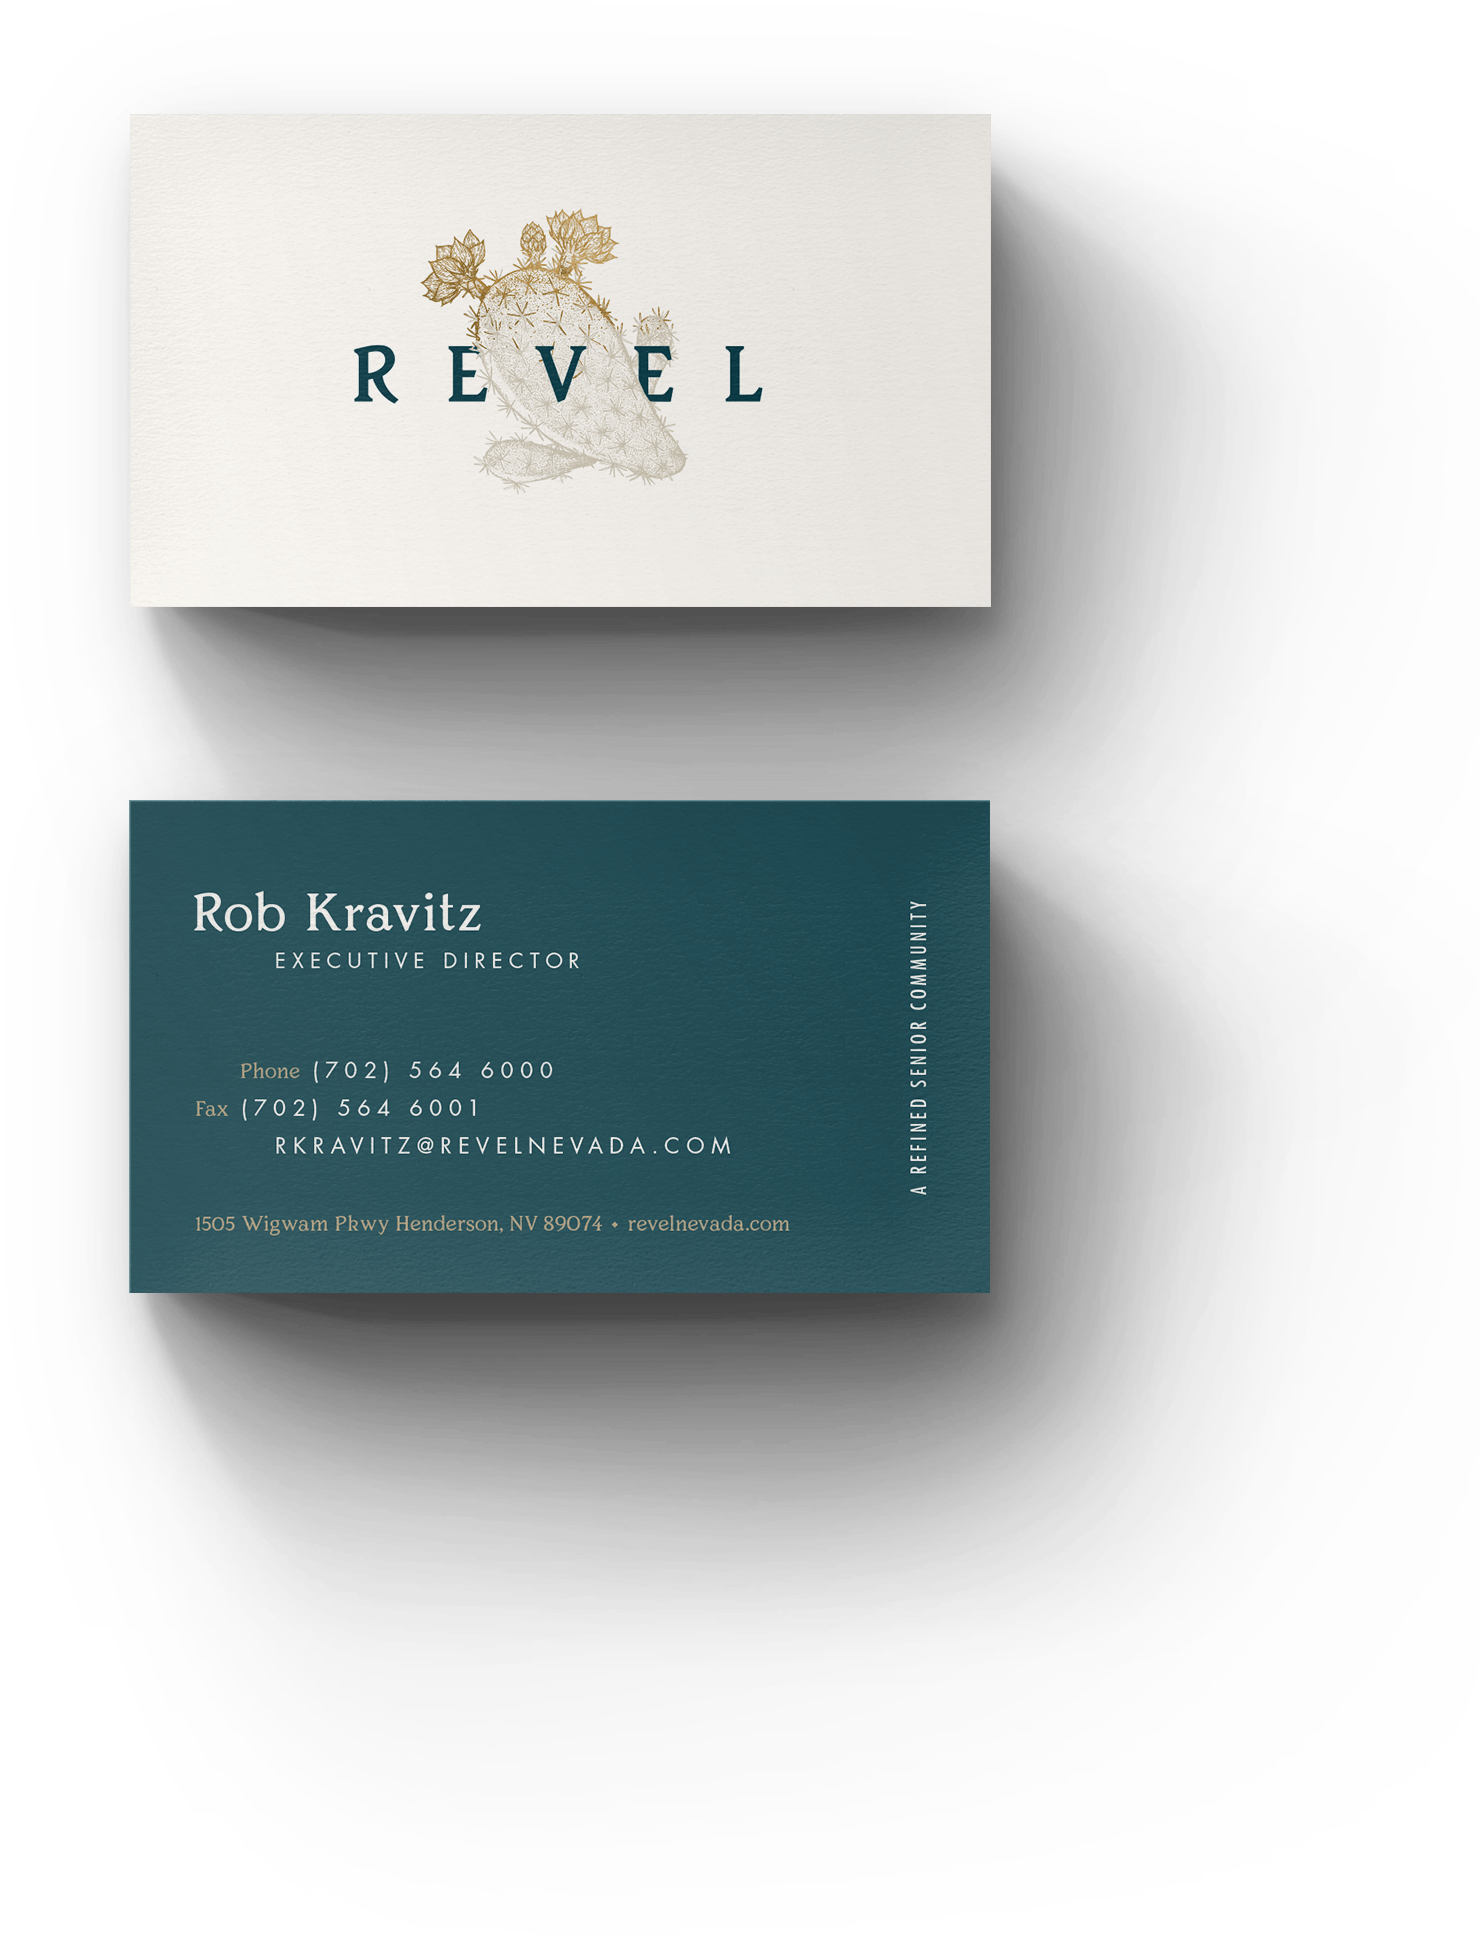 RVL_Business_Cards_02